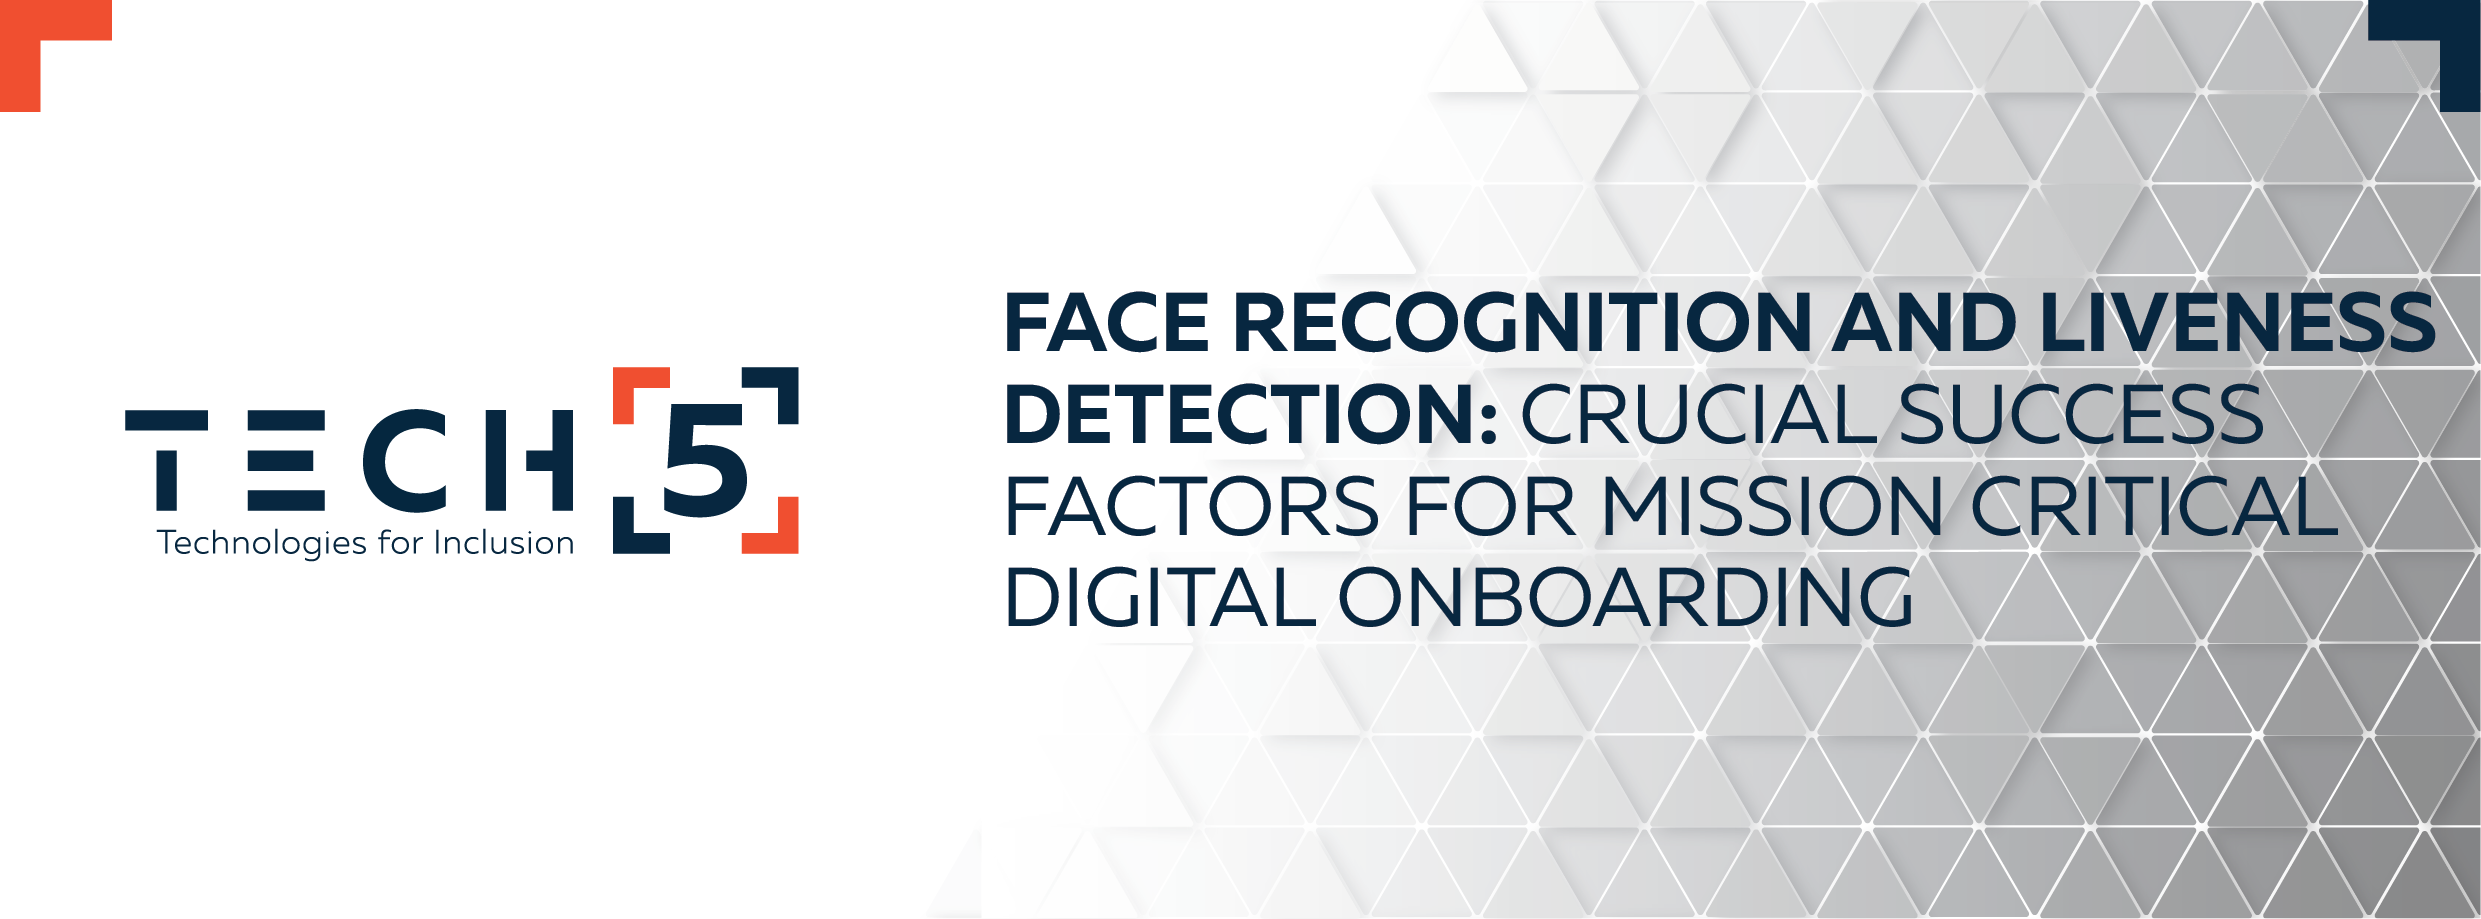 Title image_FACE RECOGNITION AND LIVENESS DETECTION